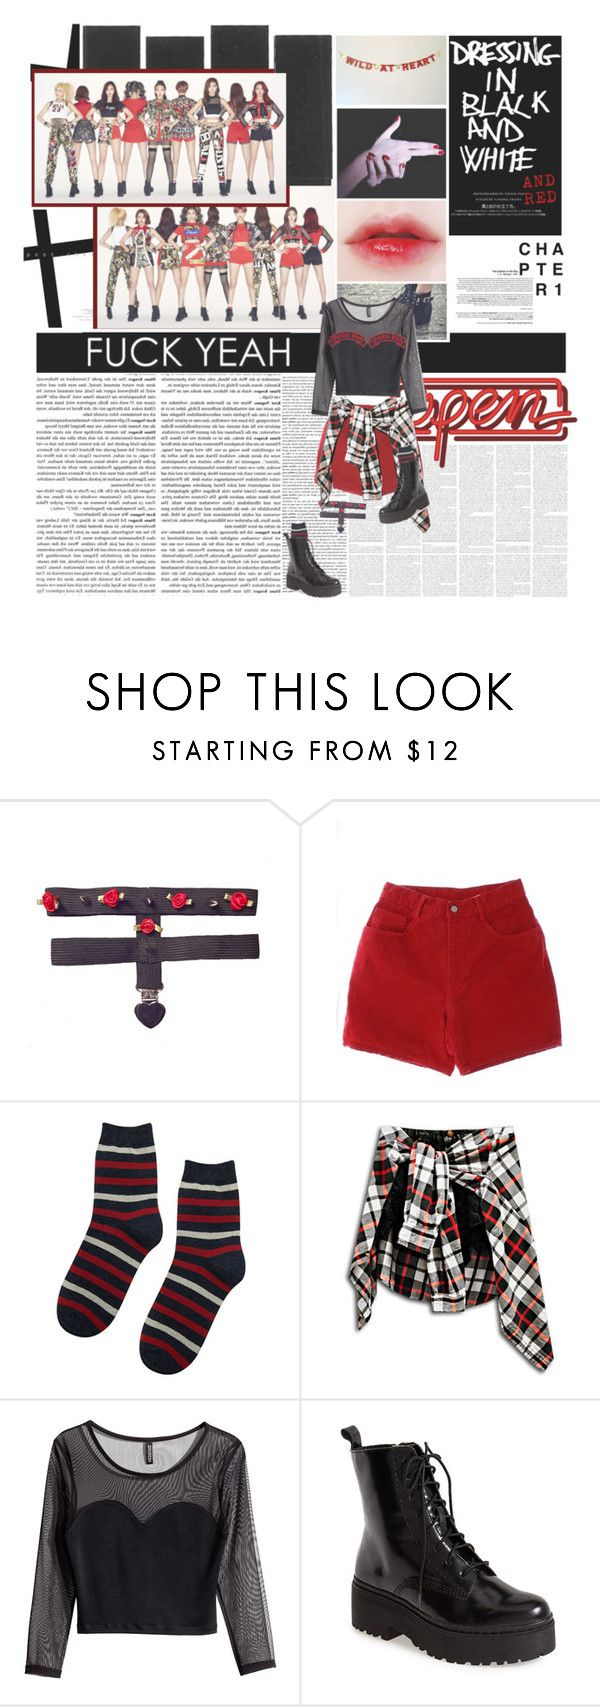 """""""Ooh Ahh - Ahh Yeah!"""" by charmandder ❤ liked on Polyvore featuring мода, Urban Outfitters, H&M, Jeffrey Campbell, kpop, twice, jyptwice и twicejyp"""